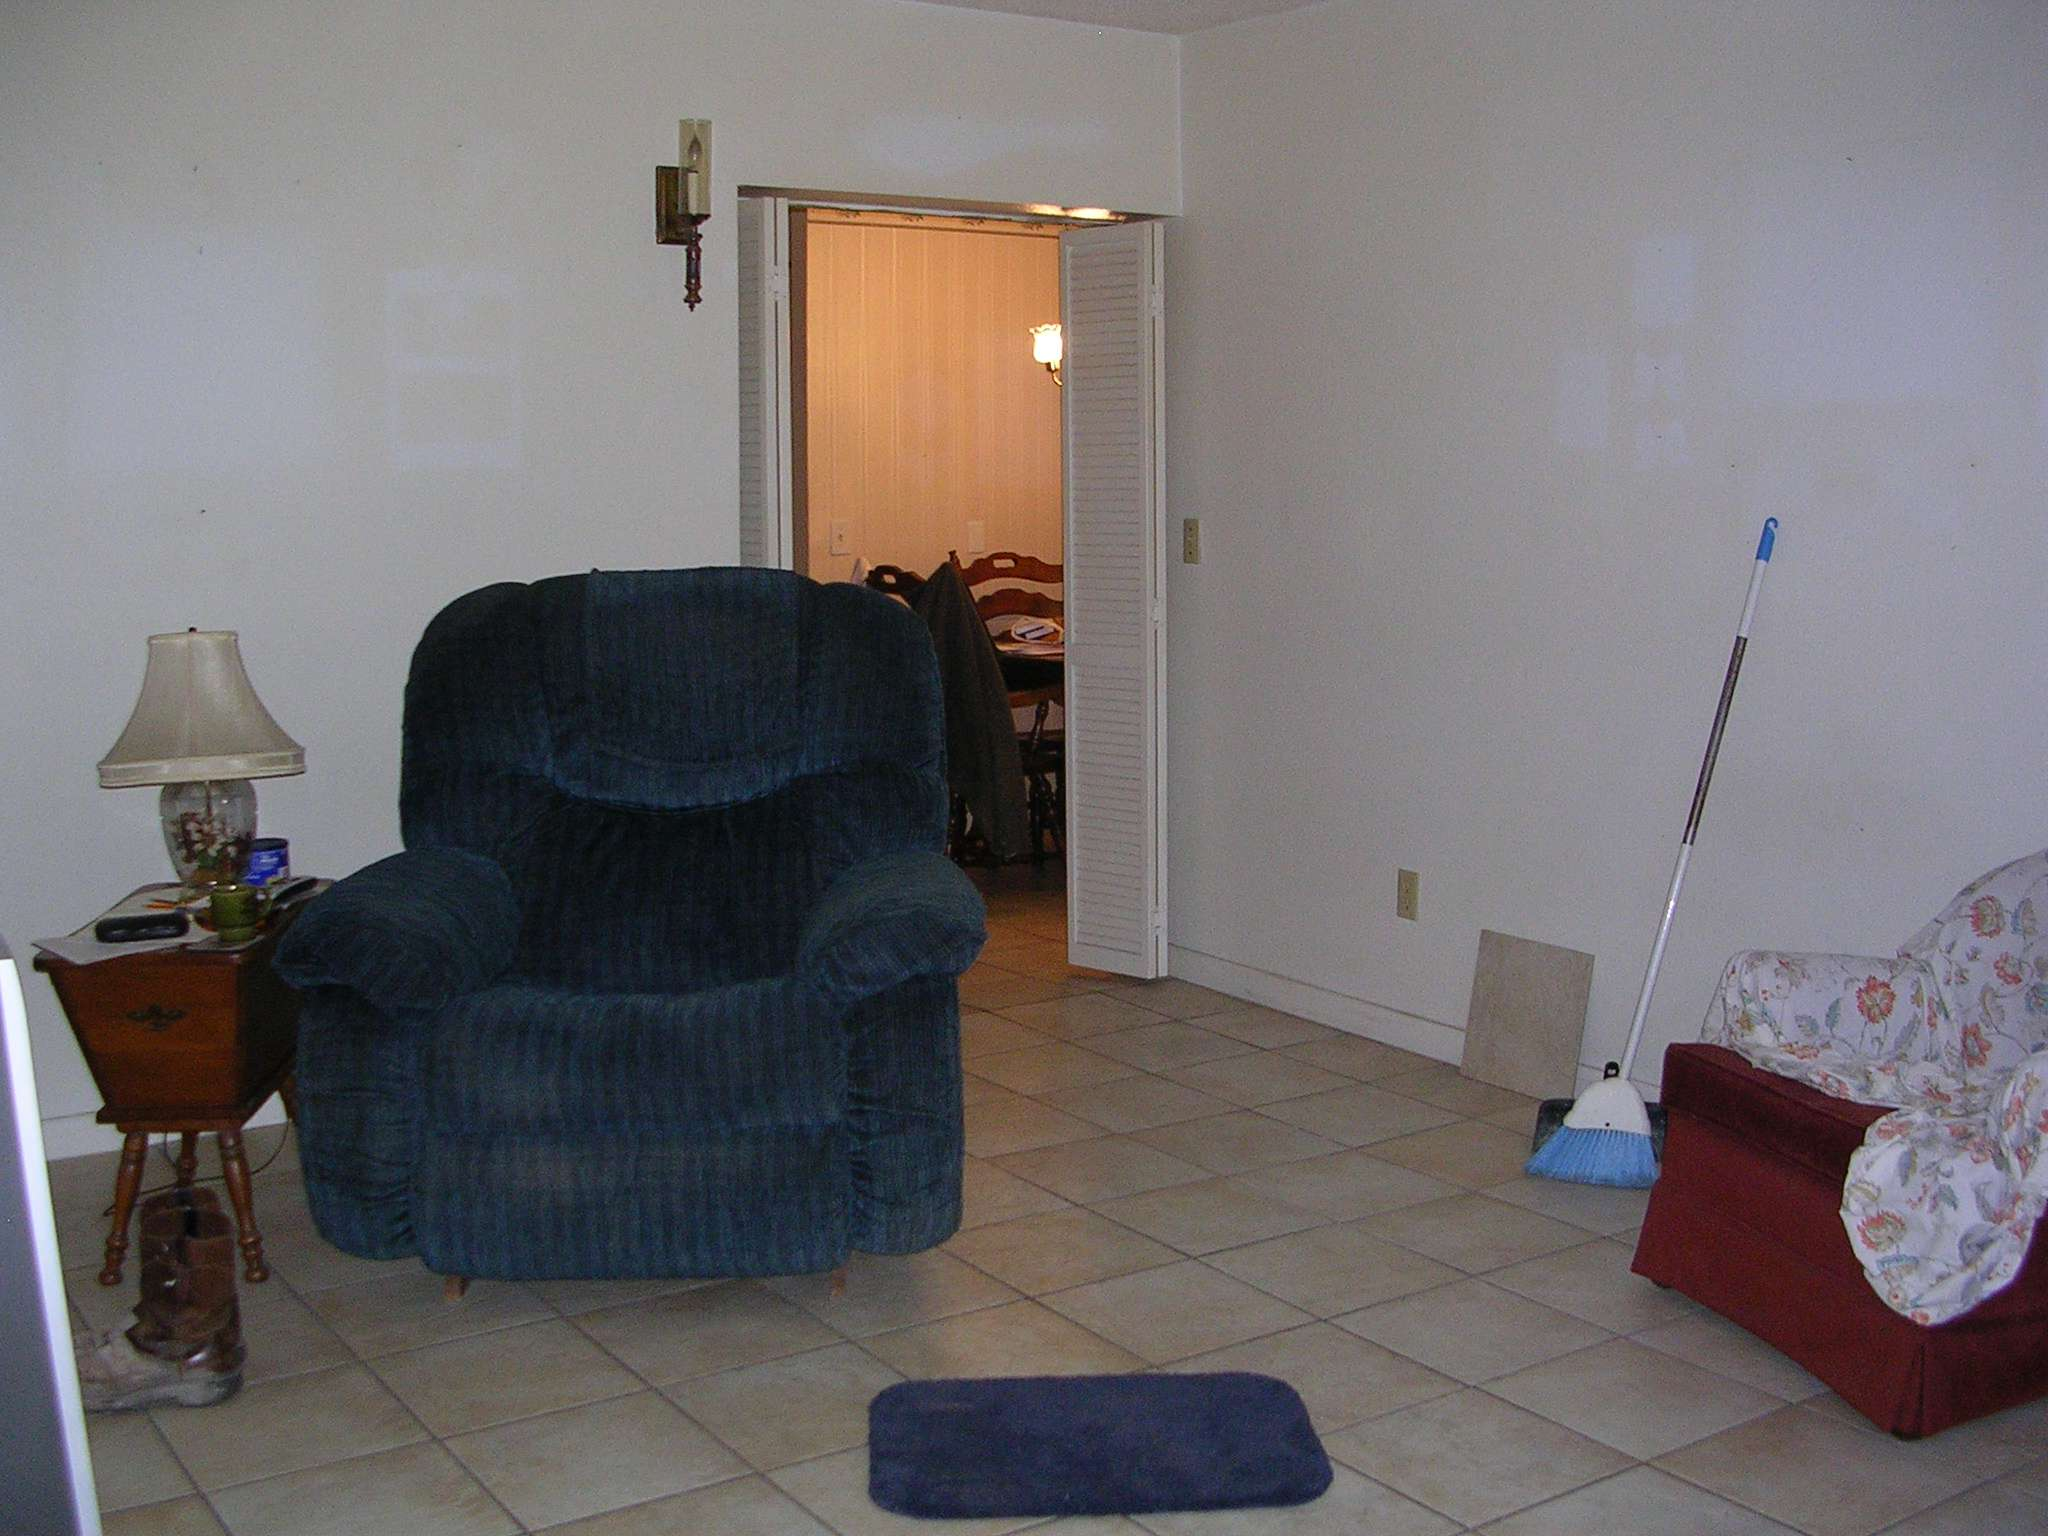 Furniture La Z Boy Sofas Chairs Recliners And Couches Find A Furniture Store Official La